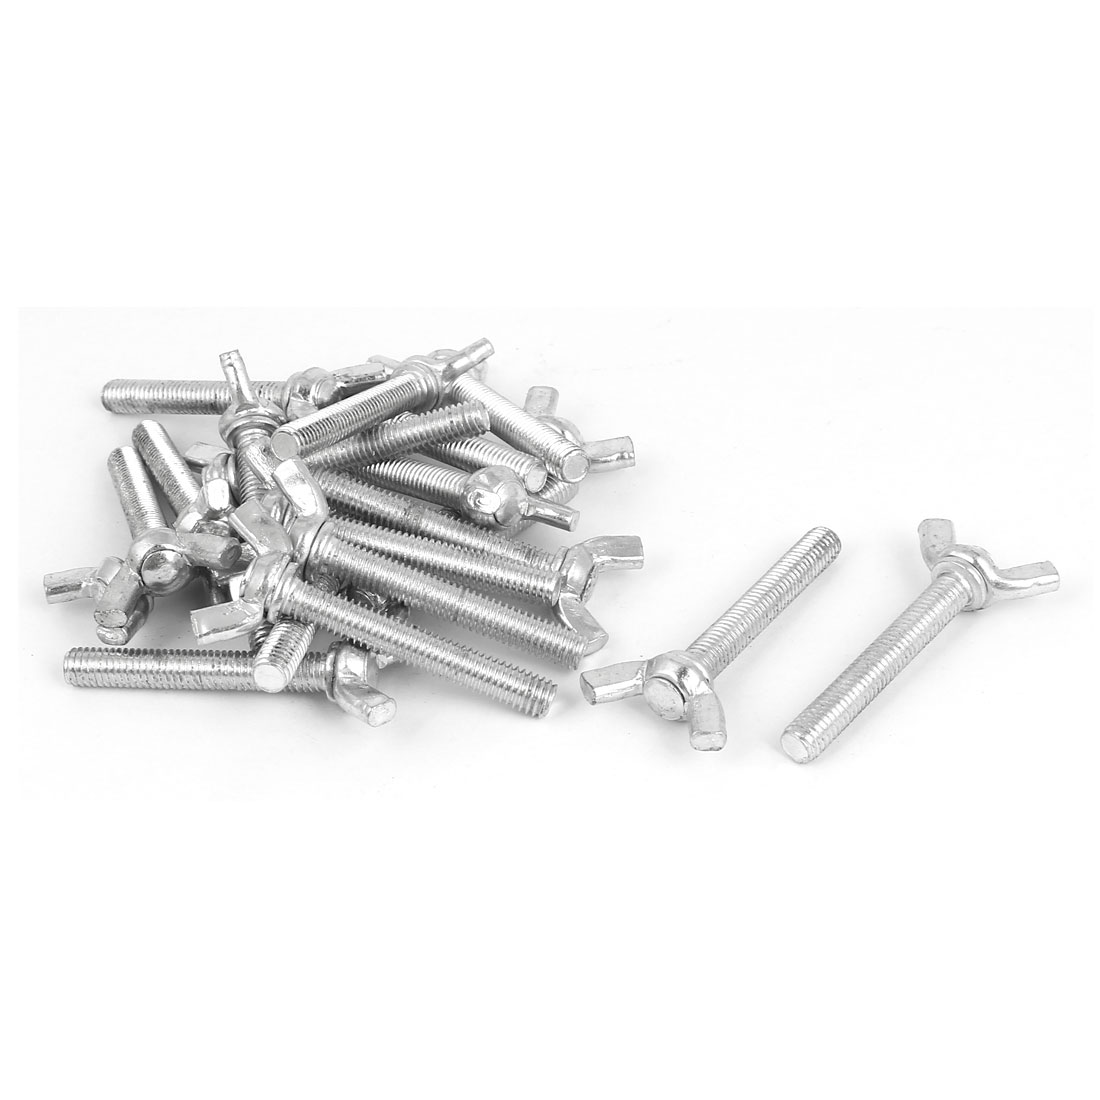 M6x40mm Thread Carbon Steel Wing Bolt Butterfly Screws Silver Tone 20pcs